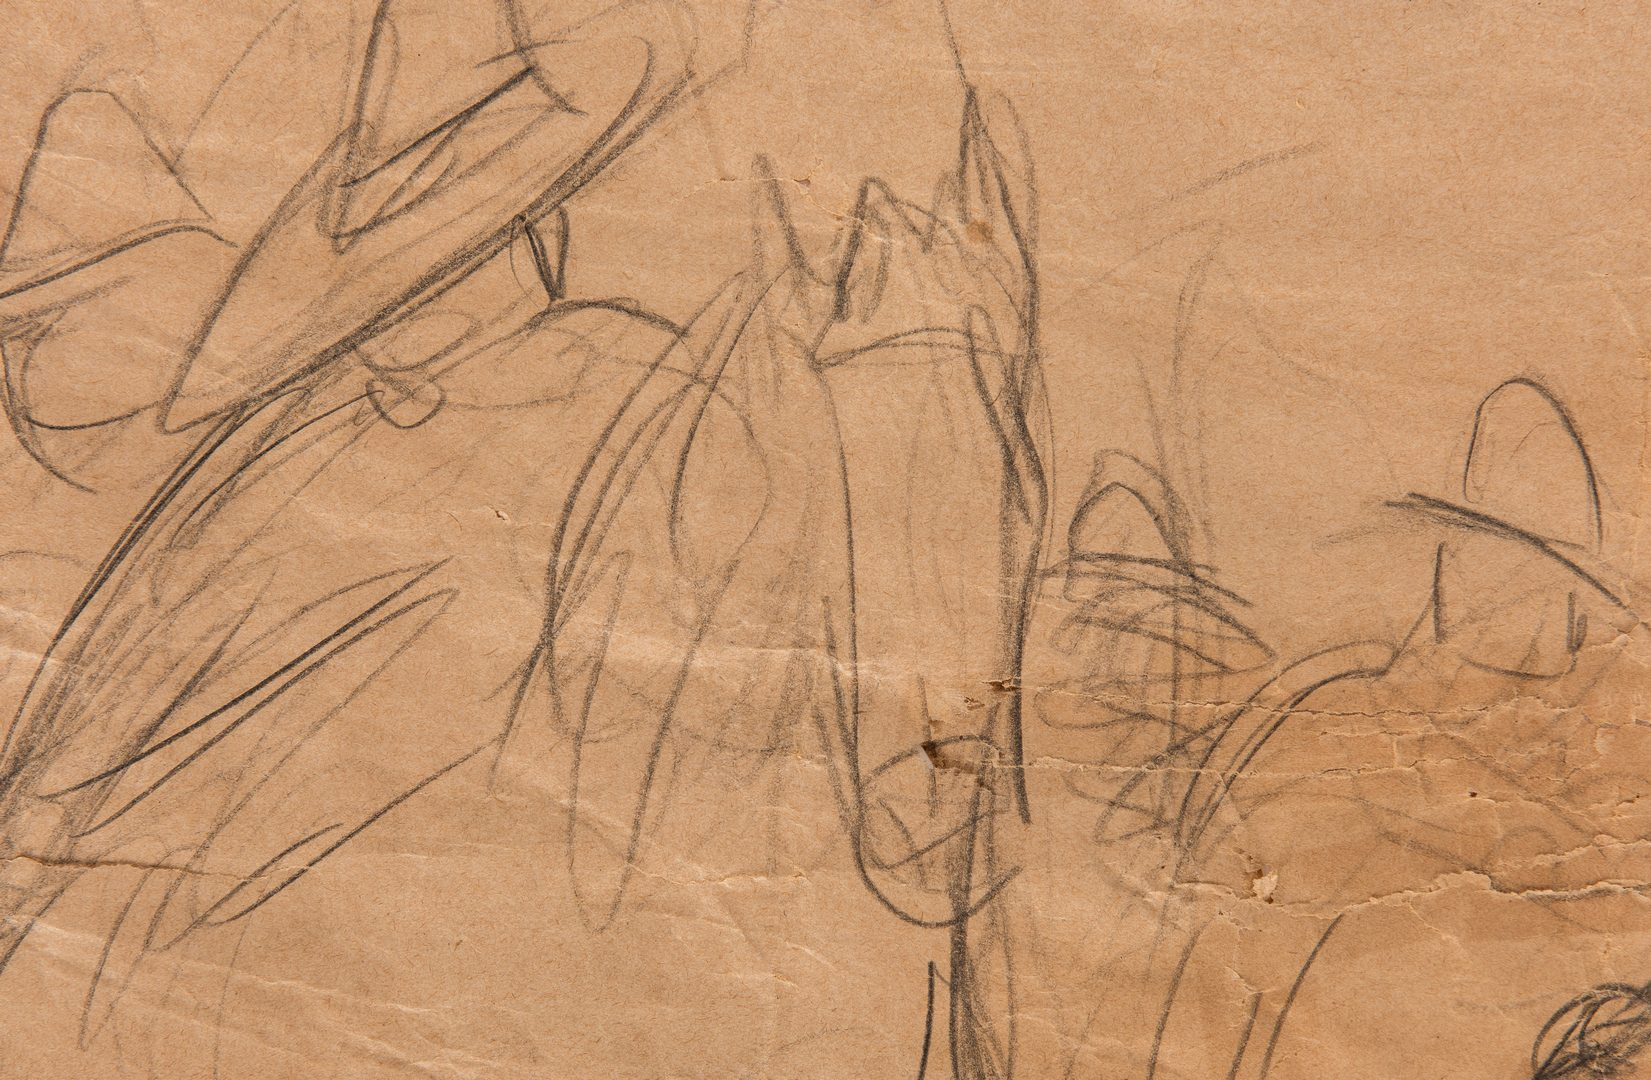 Lot 531: Diego Rivera Drawing, study for a mural